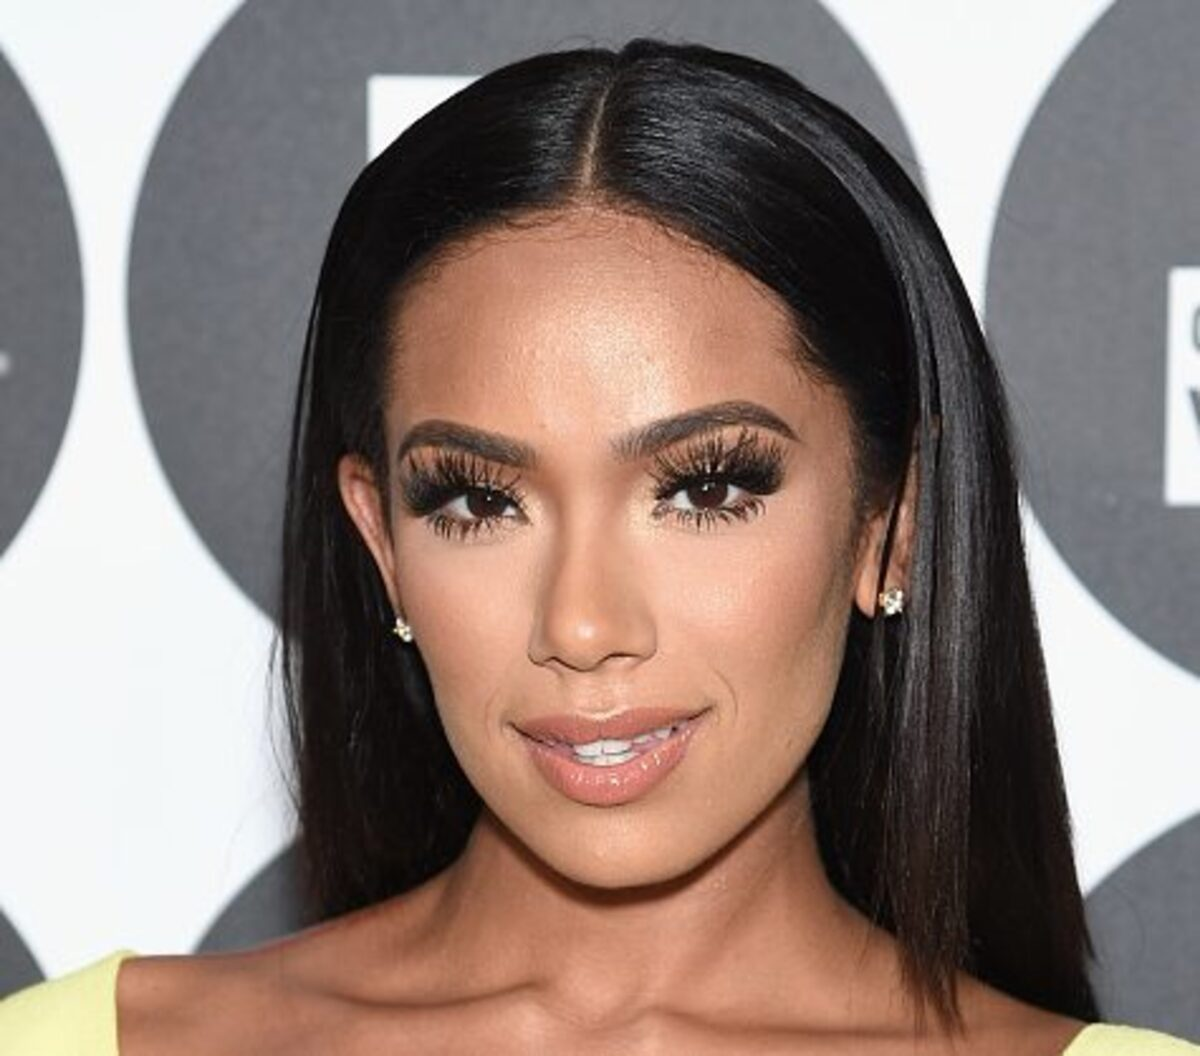 Erica Mena Drops New Merch And Impresses Fans – Check Out Her Racy Looks!